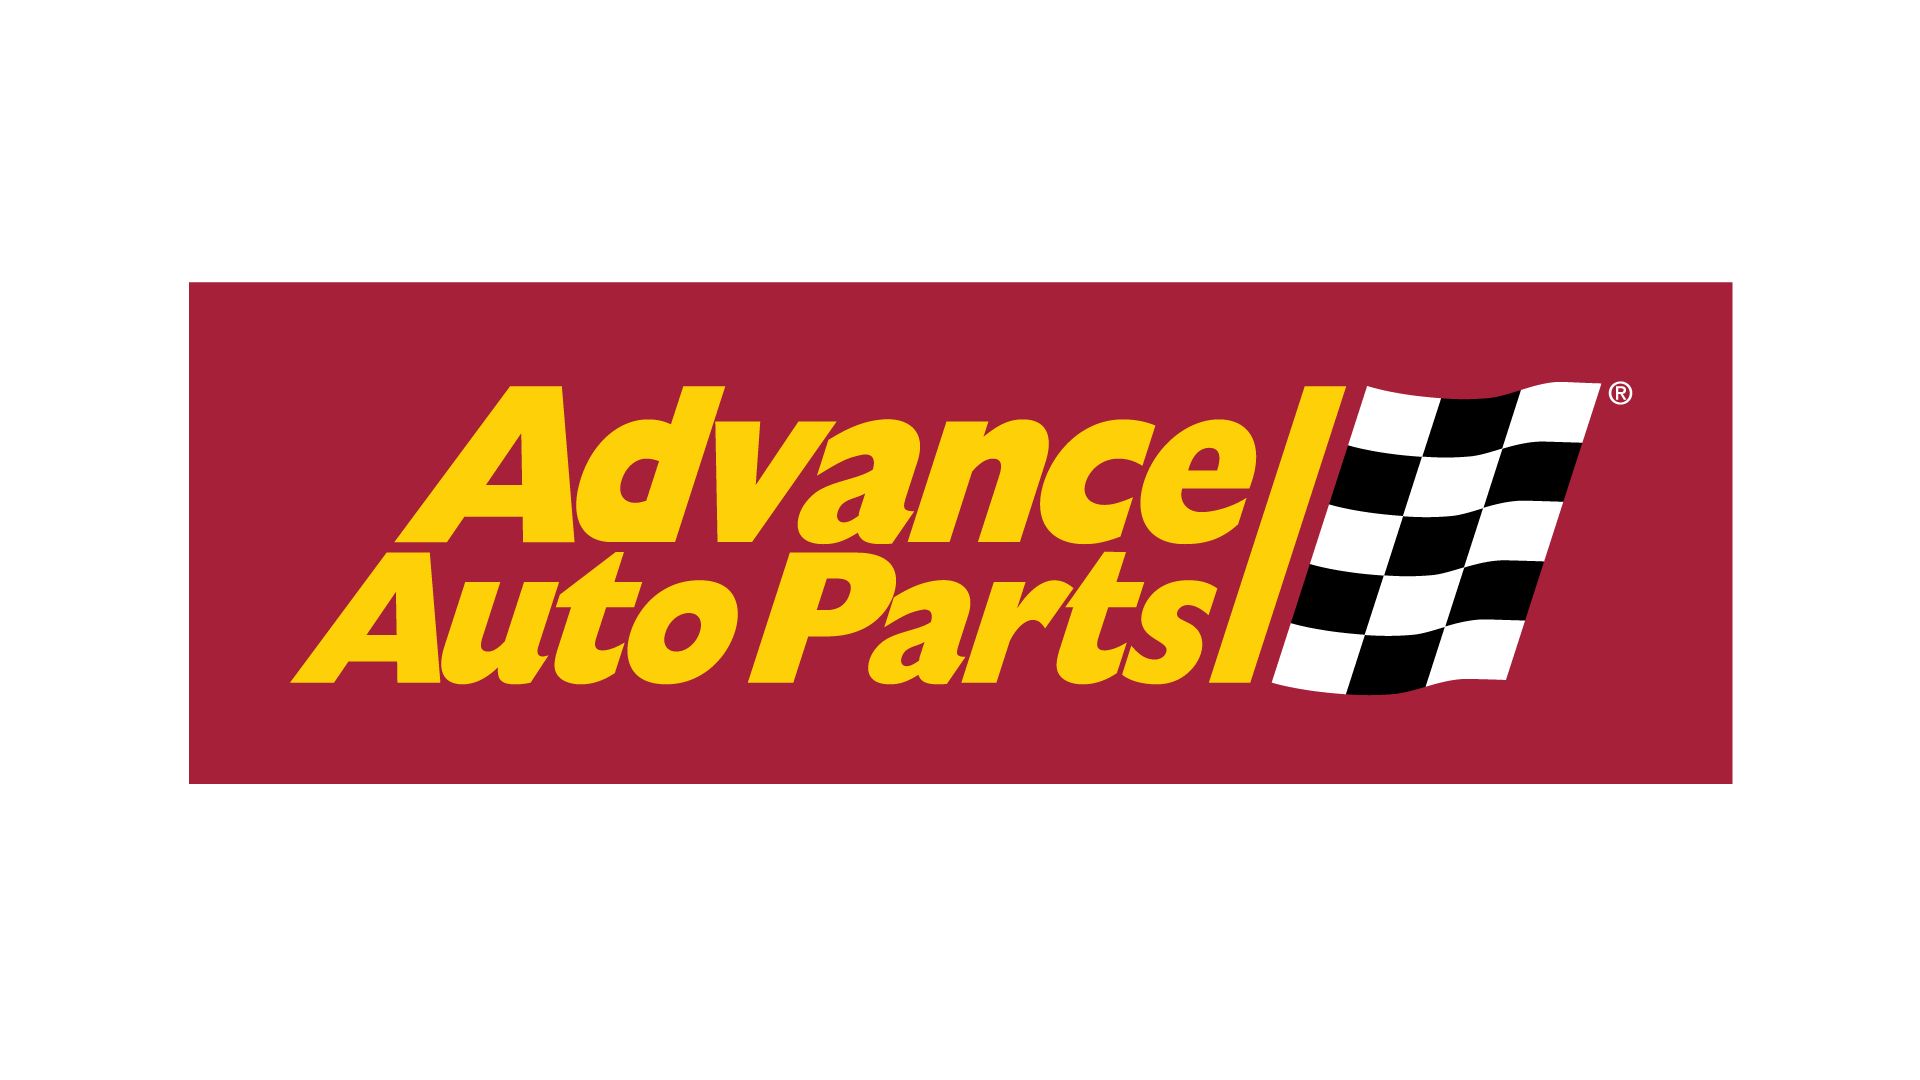 20 Advance Auto Parts Coupons & Promo Codes Available - August 2019